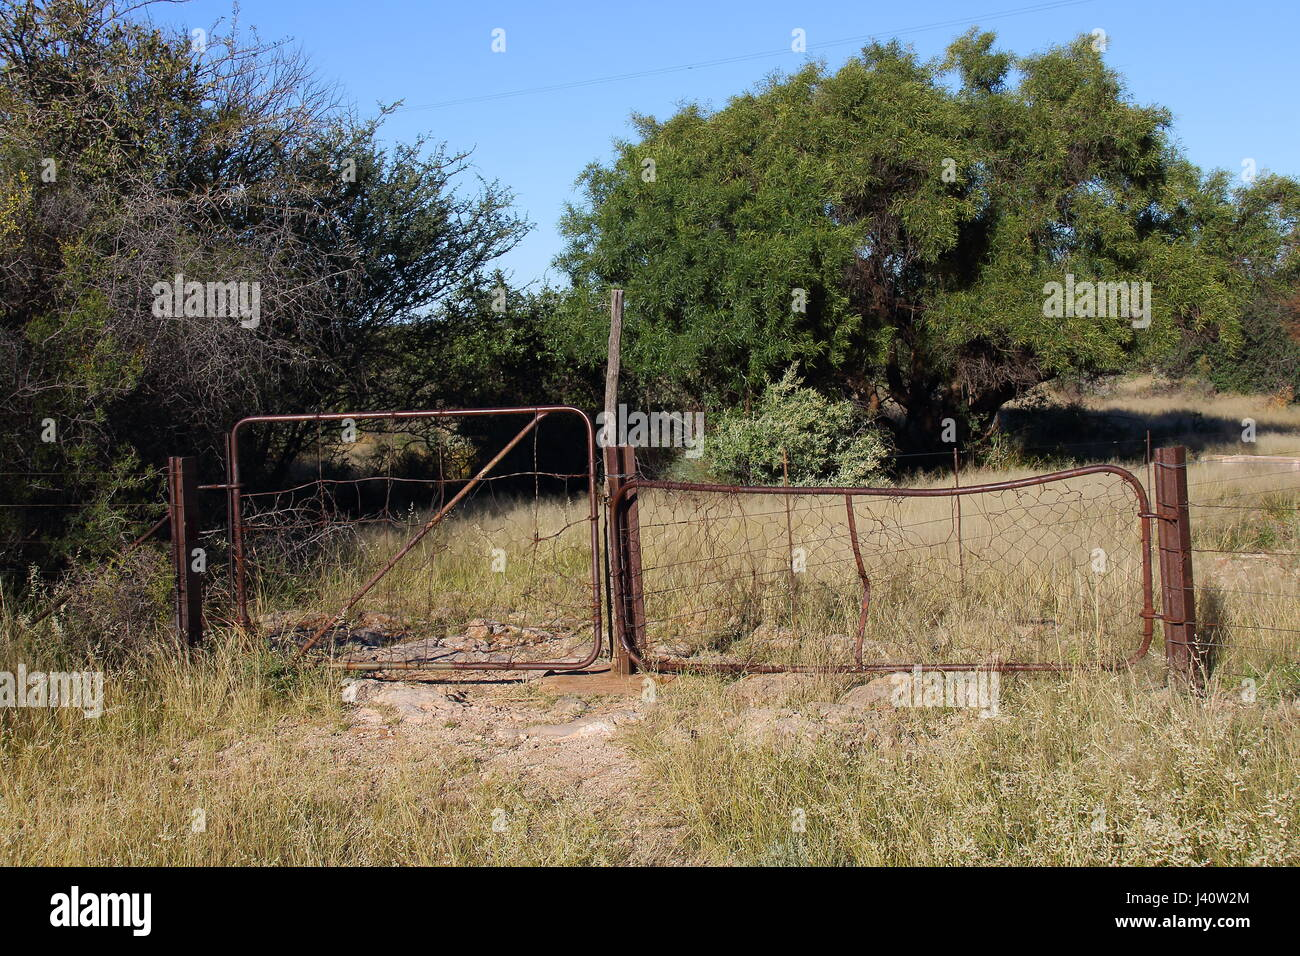 An old rusted and weathered metal gate stands closed in a field - Stock Image